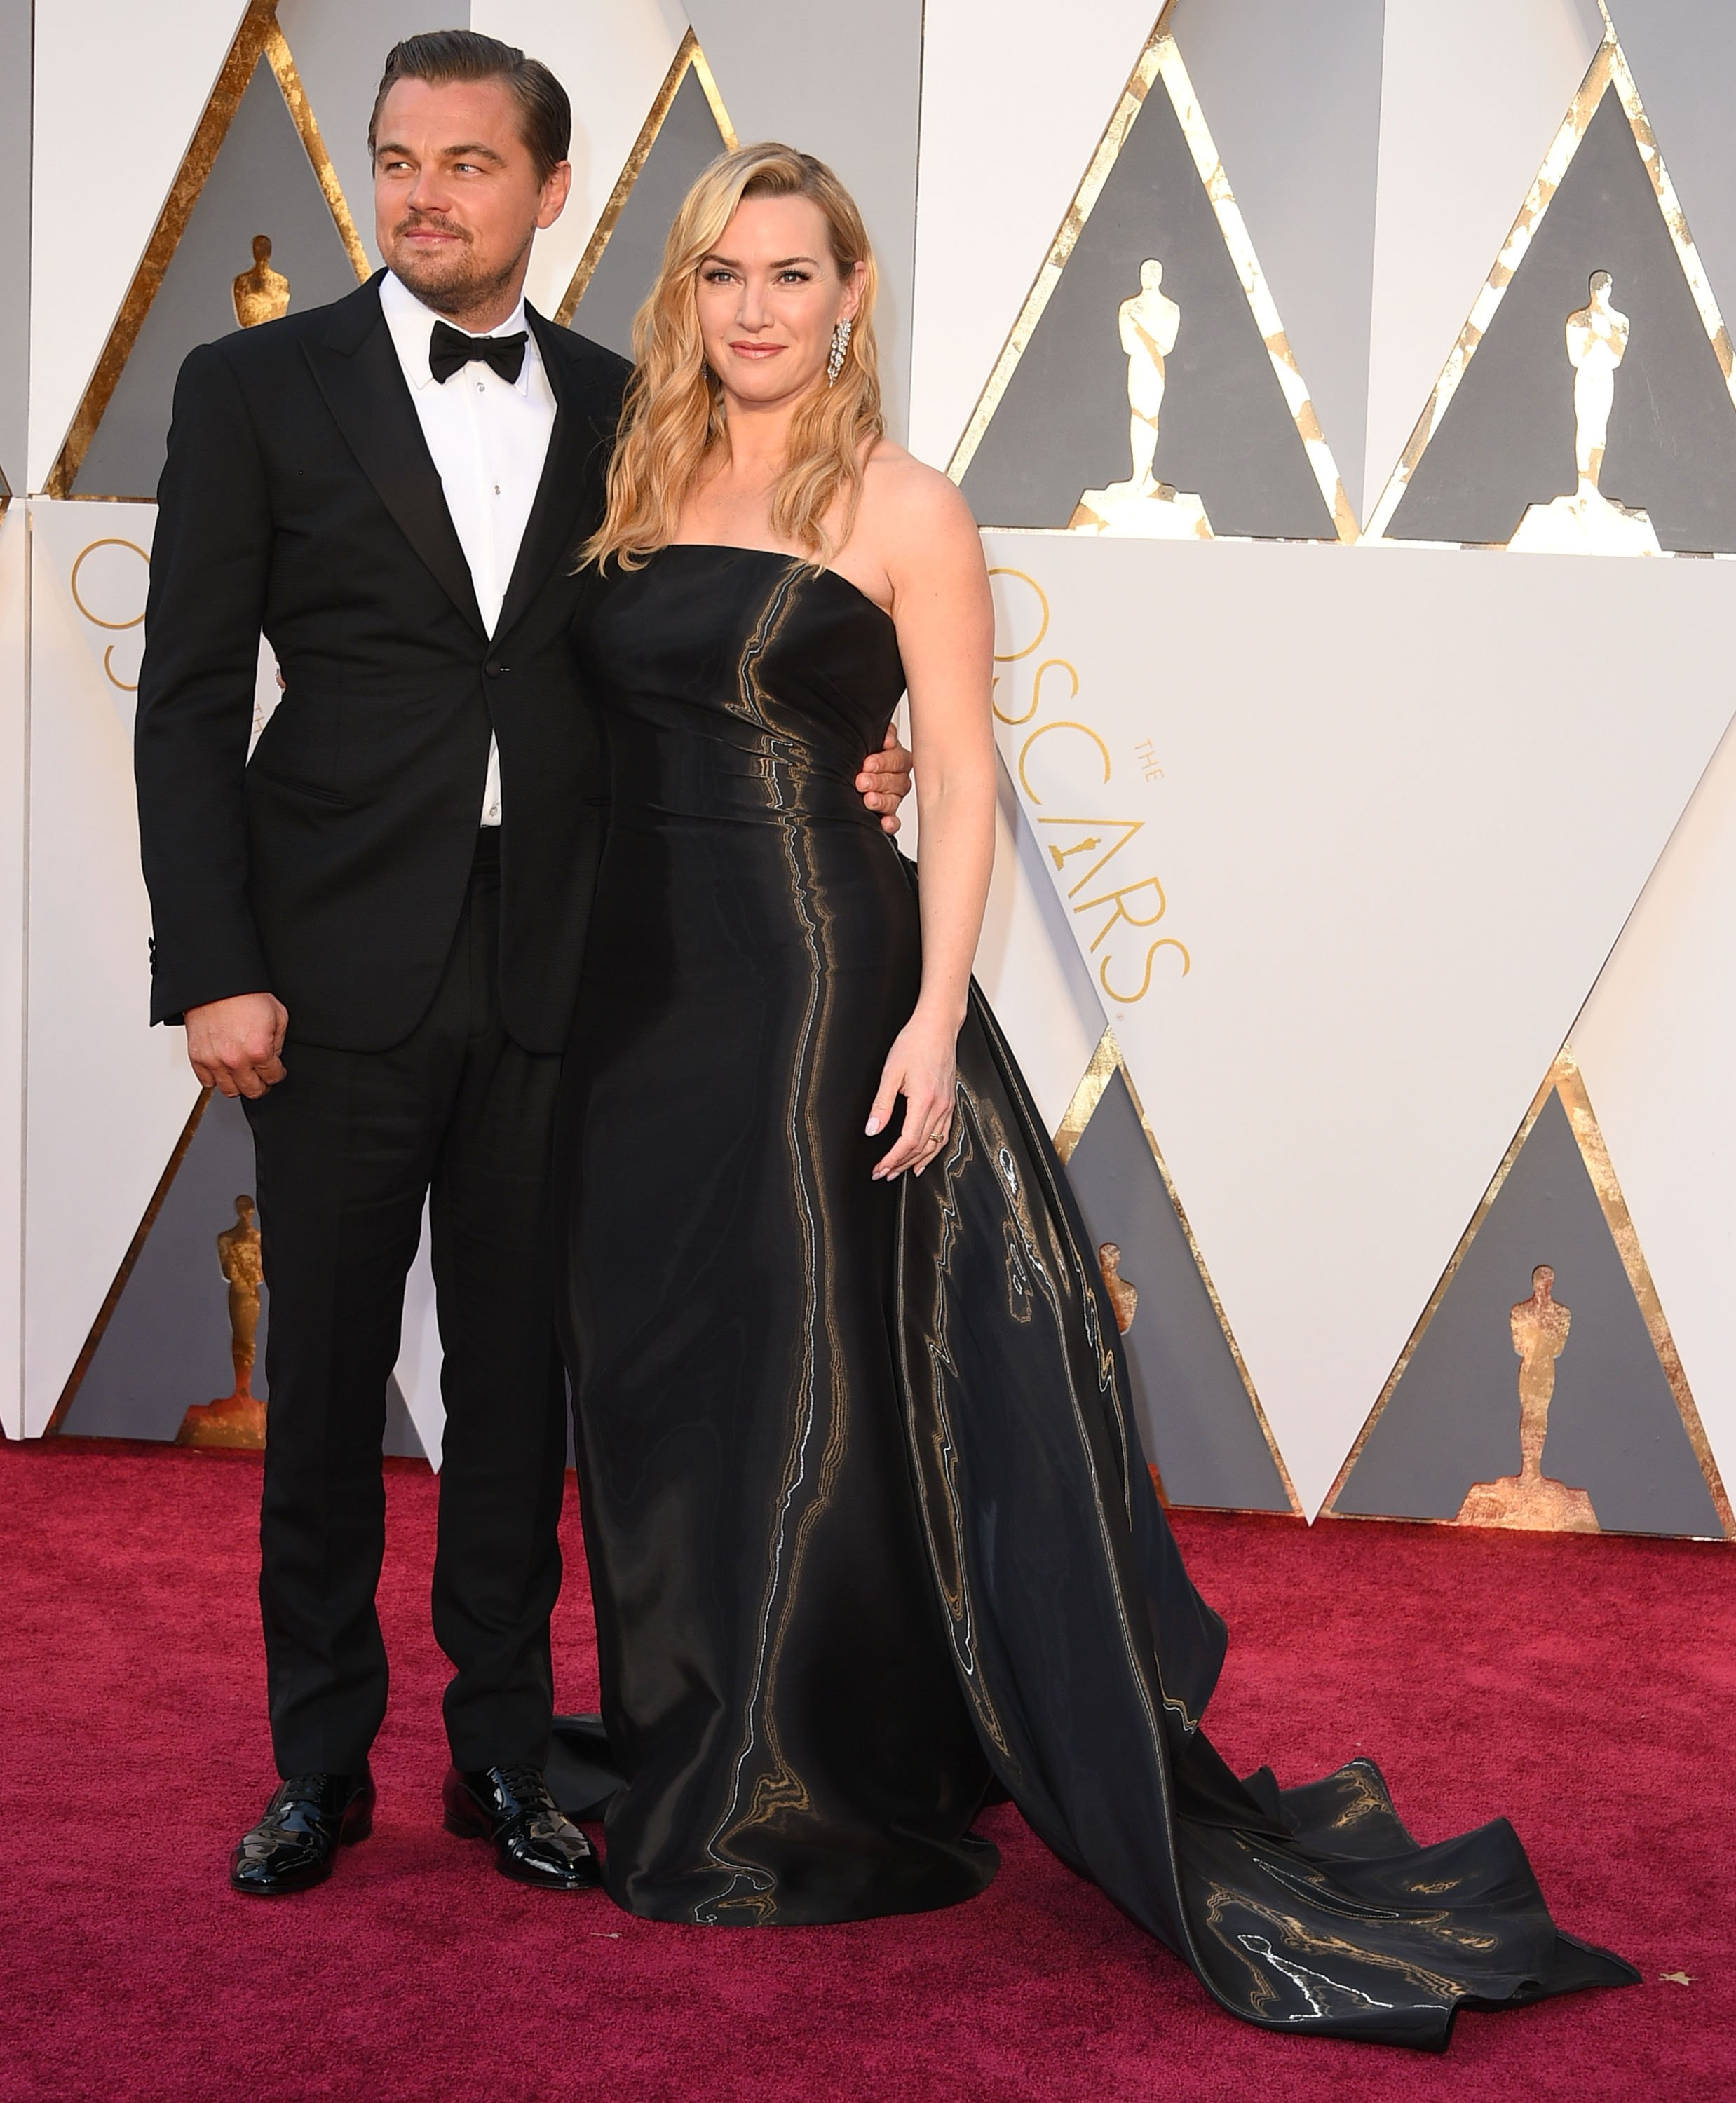 """""""Titanic"""" stars Kate Winslet and Leonardo DiCaprio attend the 88th Annual Academy Awards in California in 2016. 